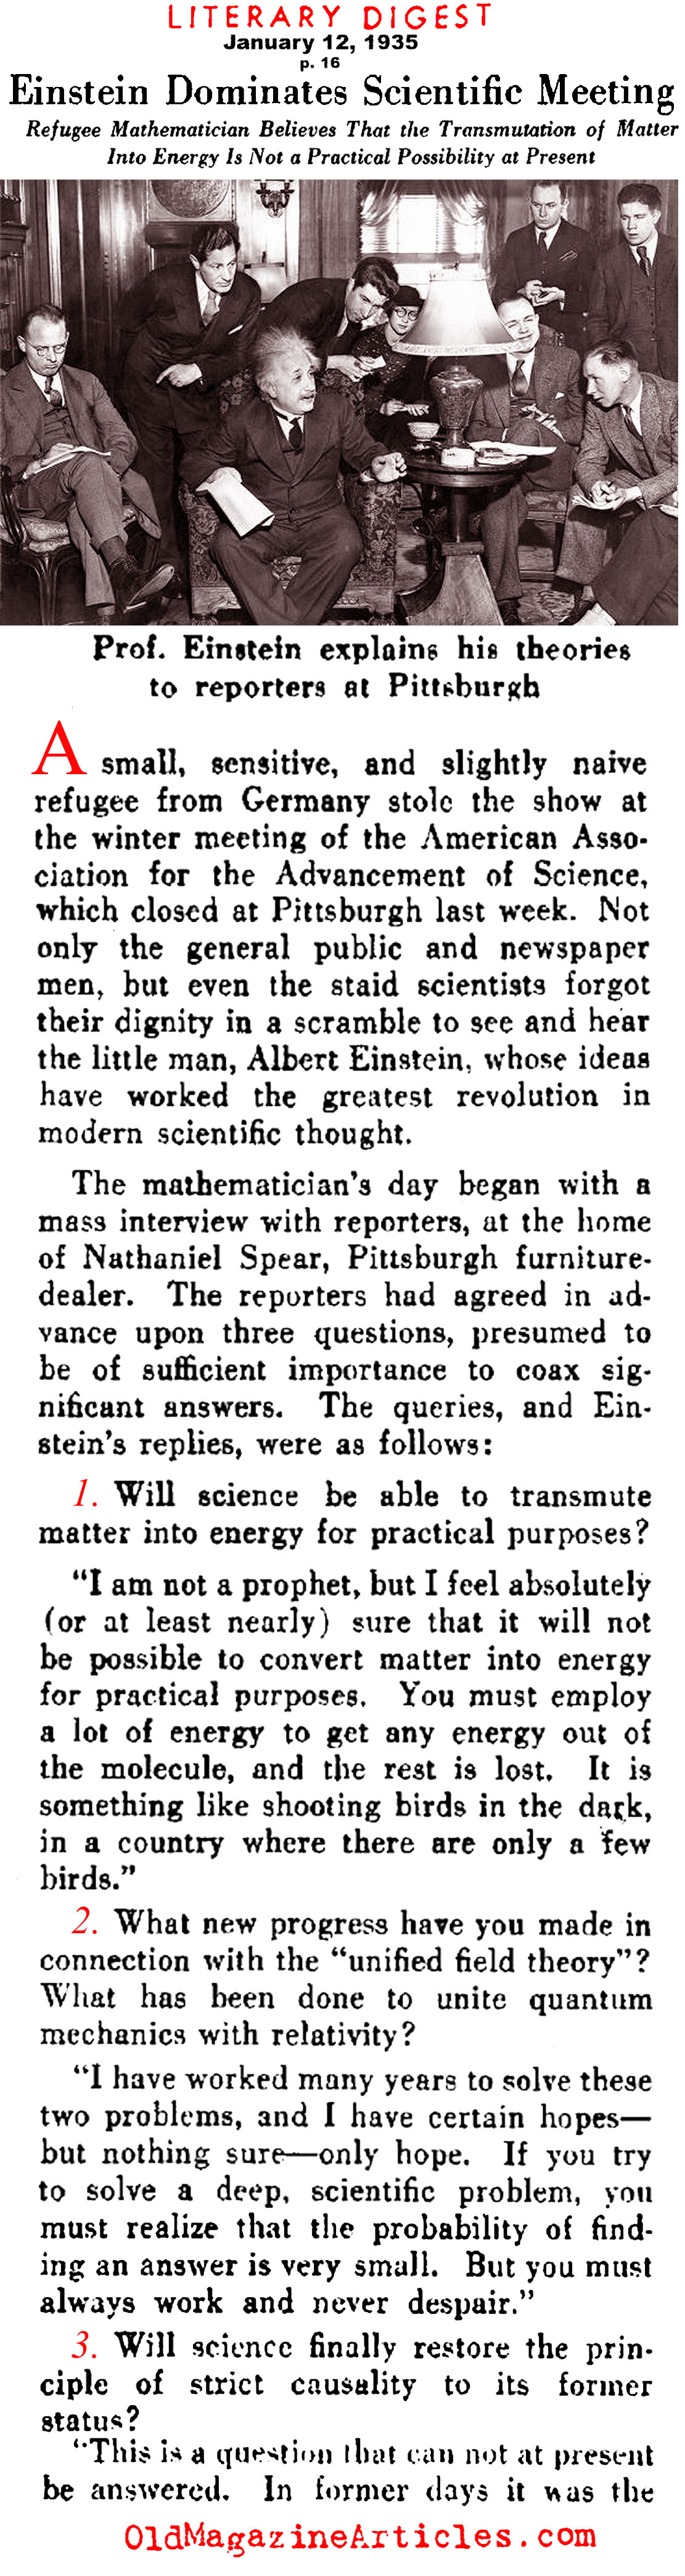 Albert Einstein Magazine Interview  (Literary Digest, 1935)